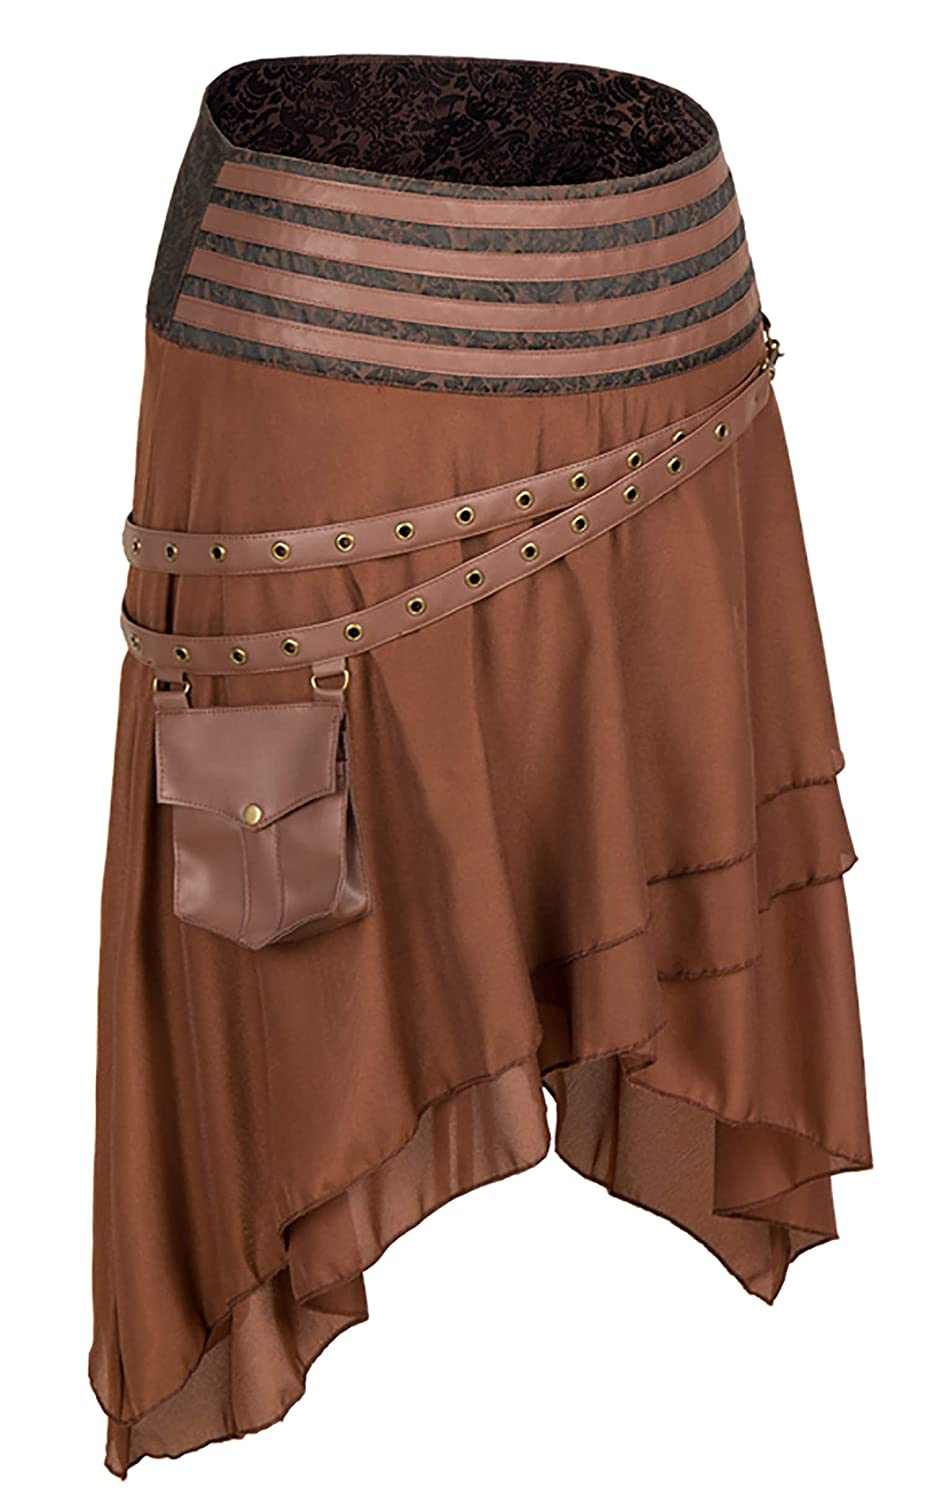 Steampunk Skirts | Bustle Skirts, Lace Skirts, Ruffle Skirts Alivila.Y Fashion Corset Womens Brown Steampunk Gothic Skirt Victorian Pirate Skirts $32.99 AT vintagedancer.com